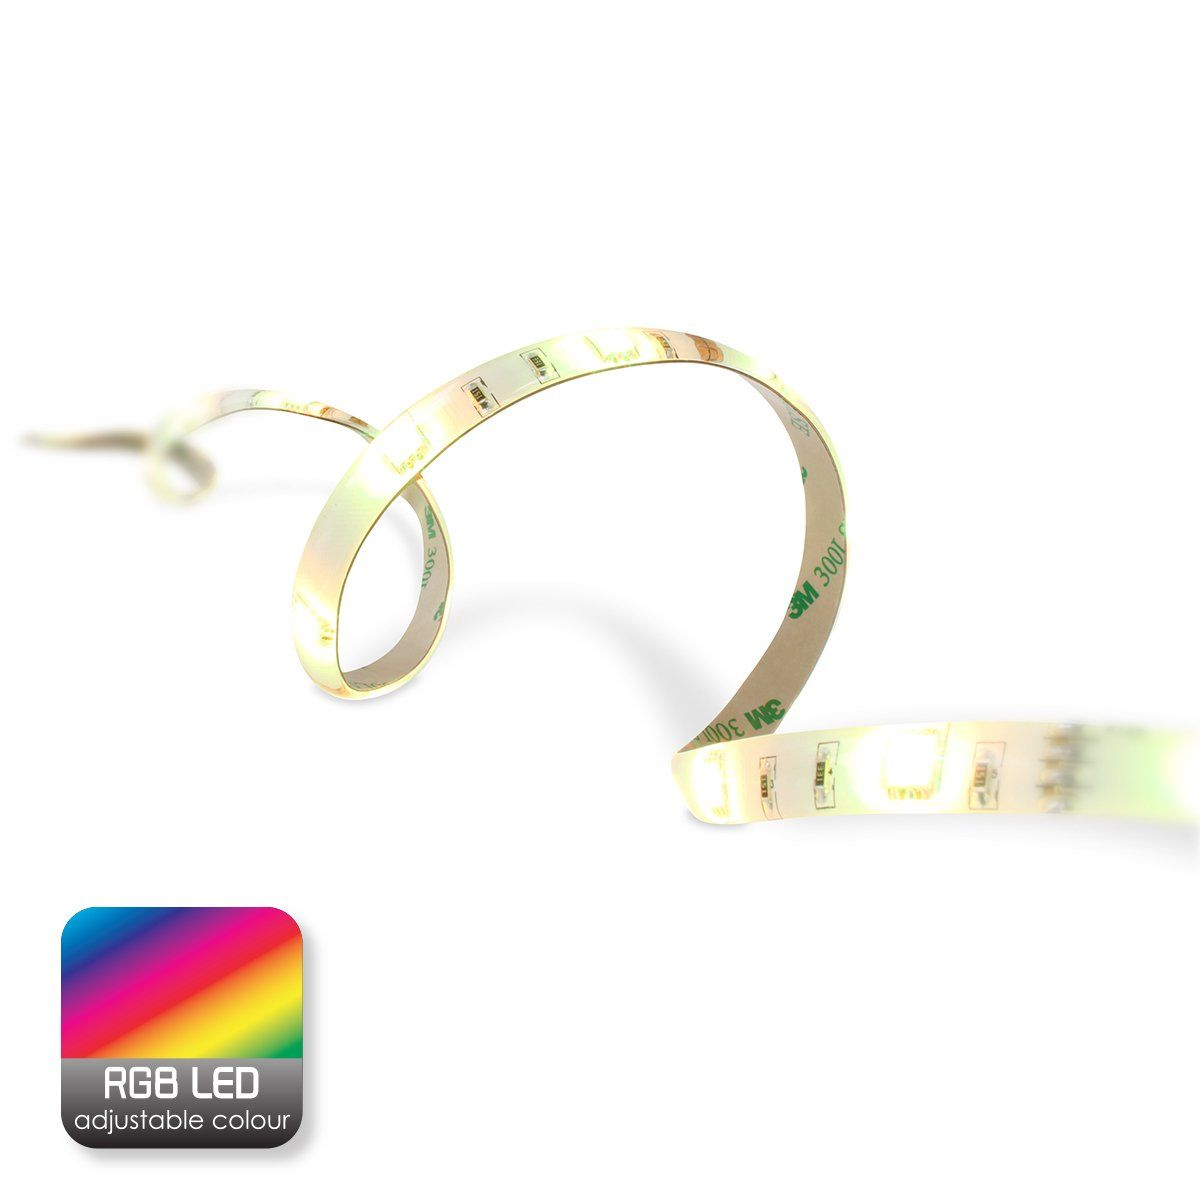 Home sweet home LED strip 3 meter RGB - 90 leds